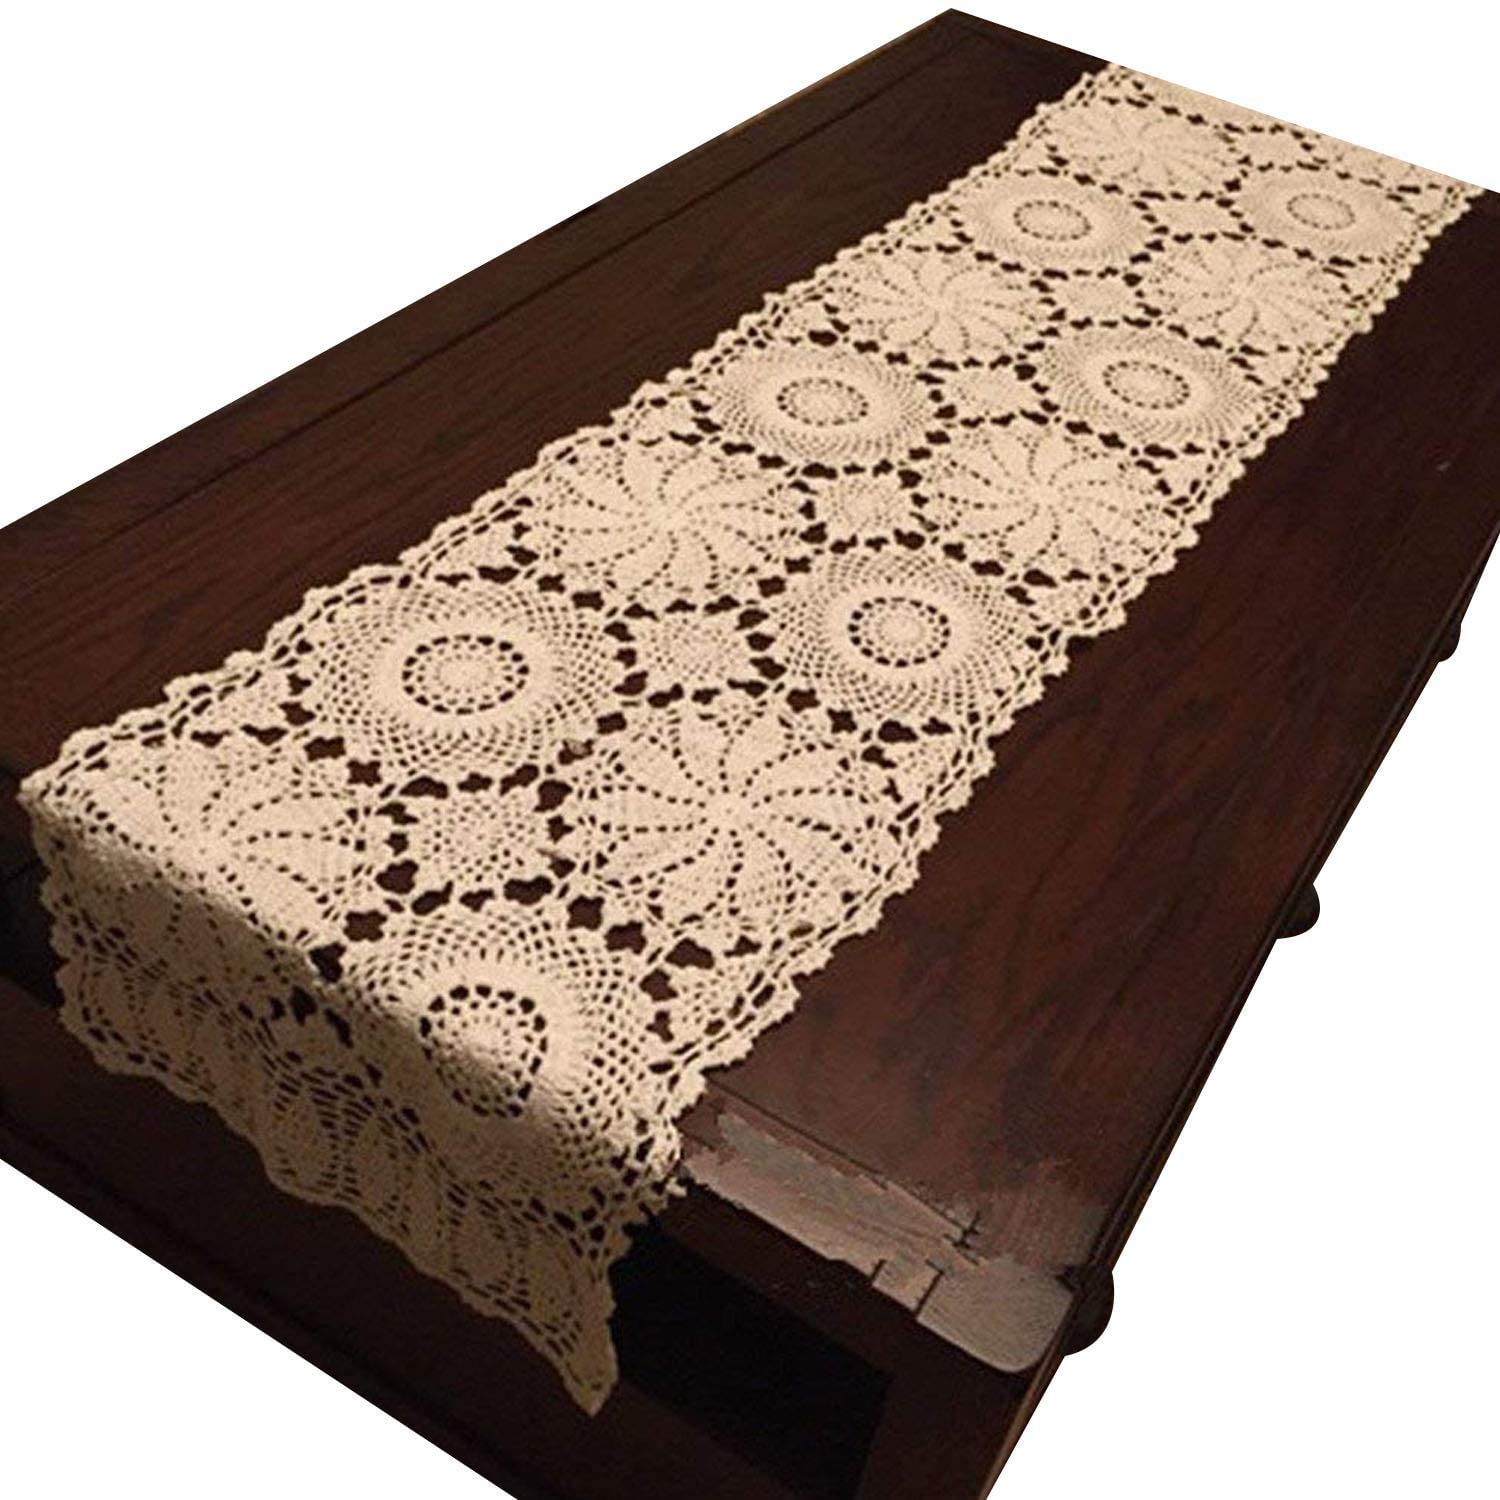 USTIDE Rustic Floral Crochet Table Runner Beige Cotton Lace Table Cover 15